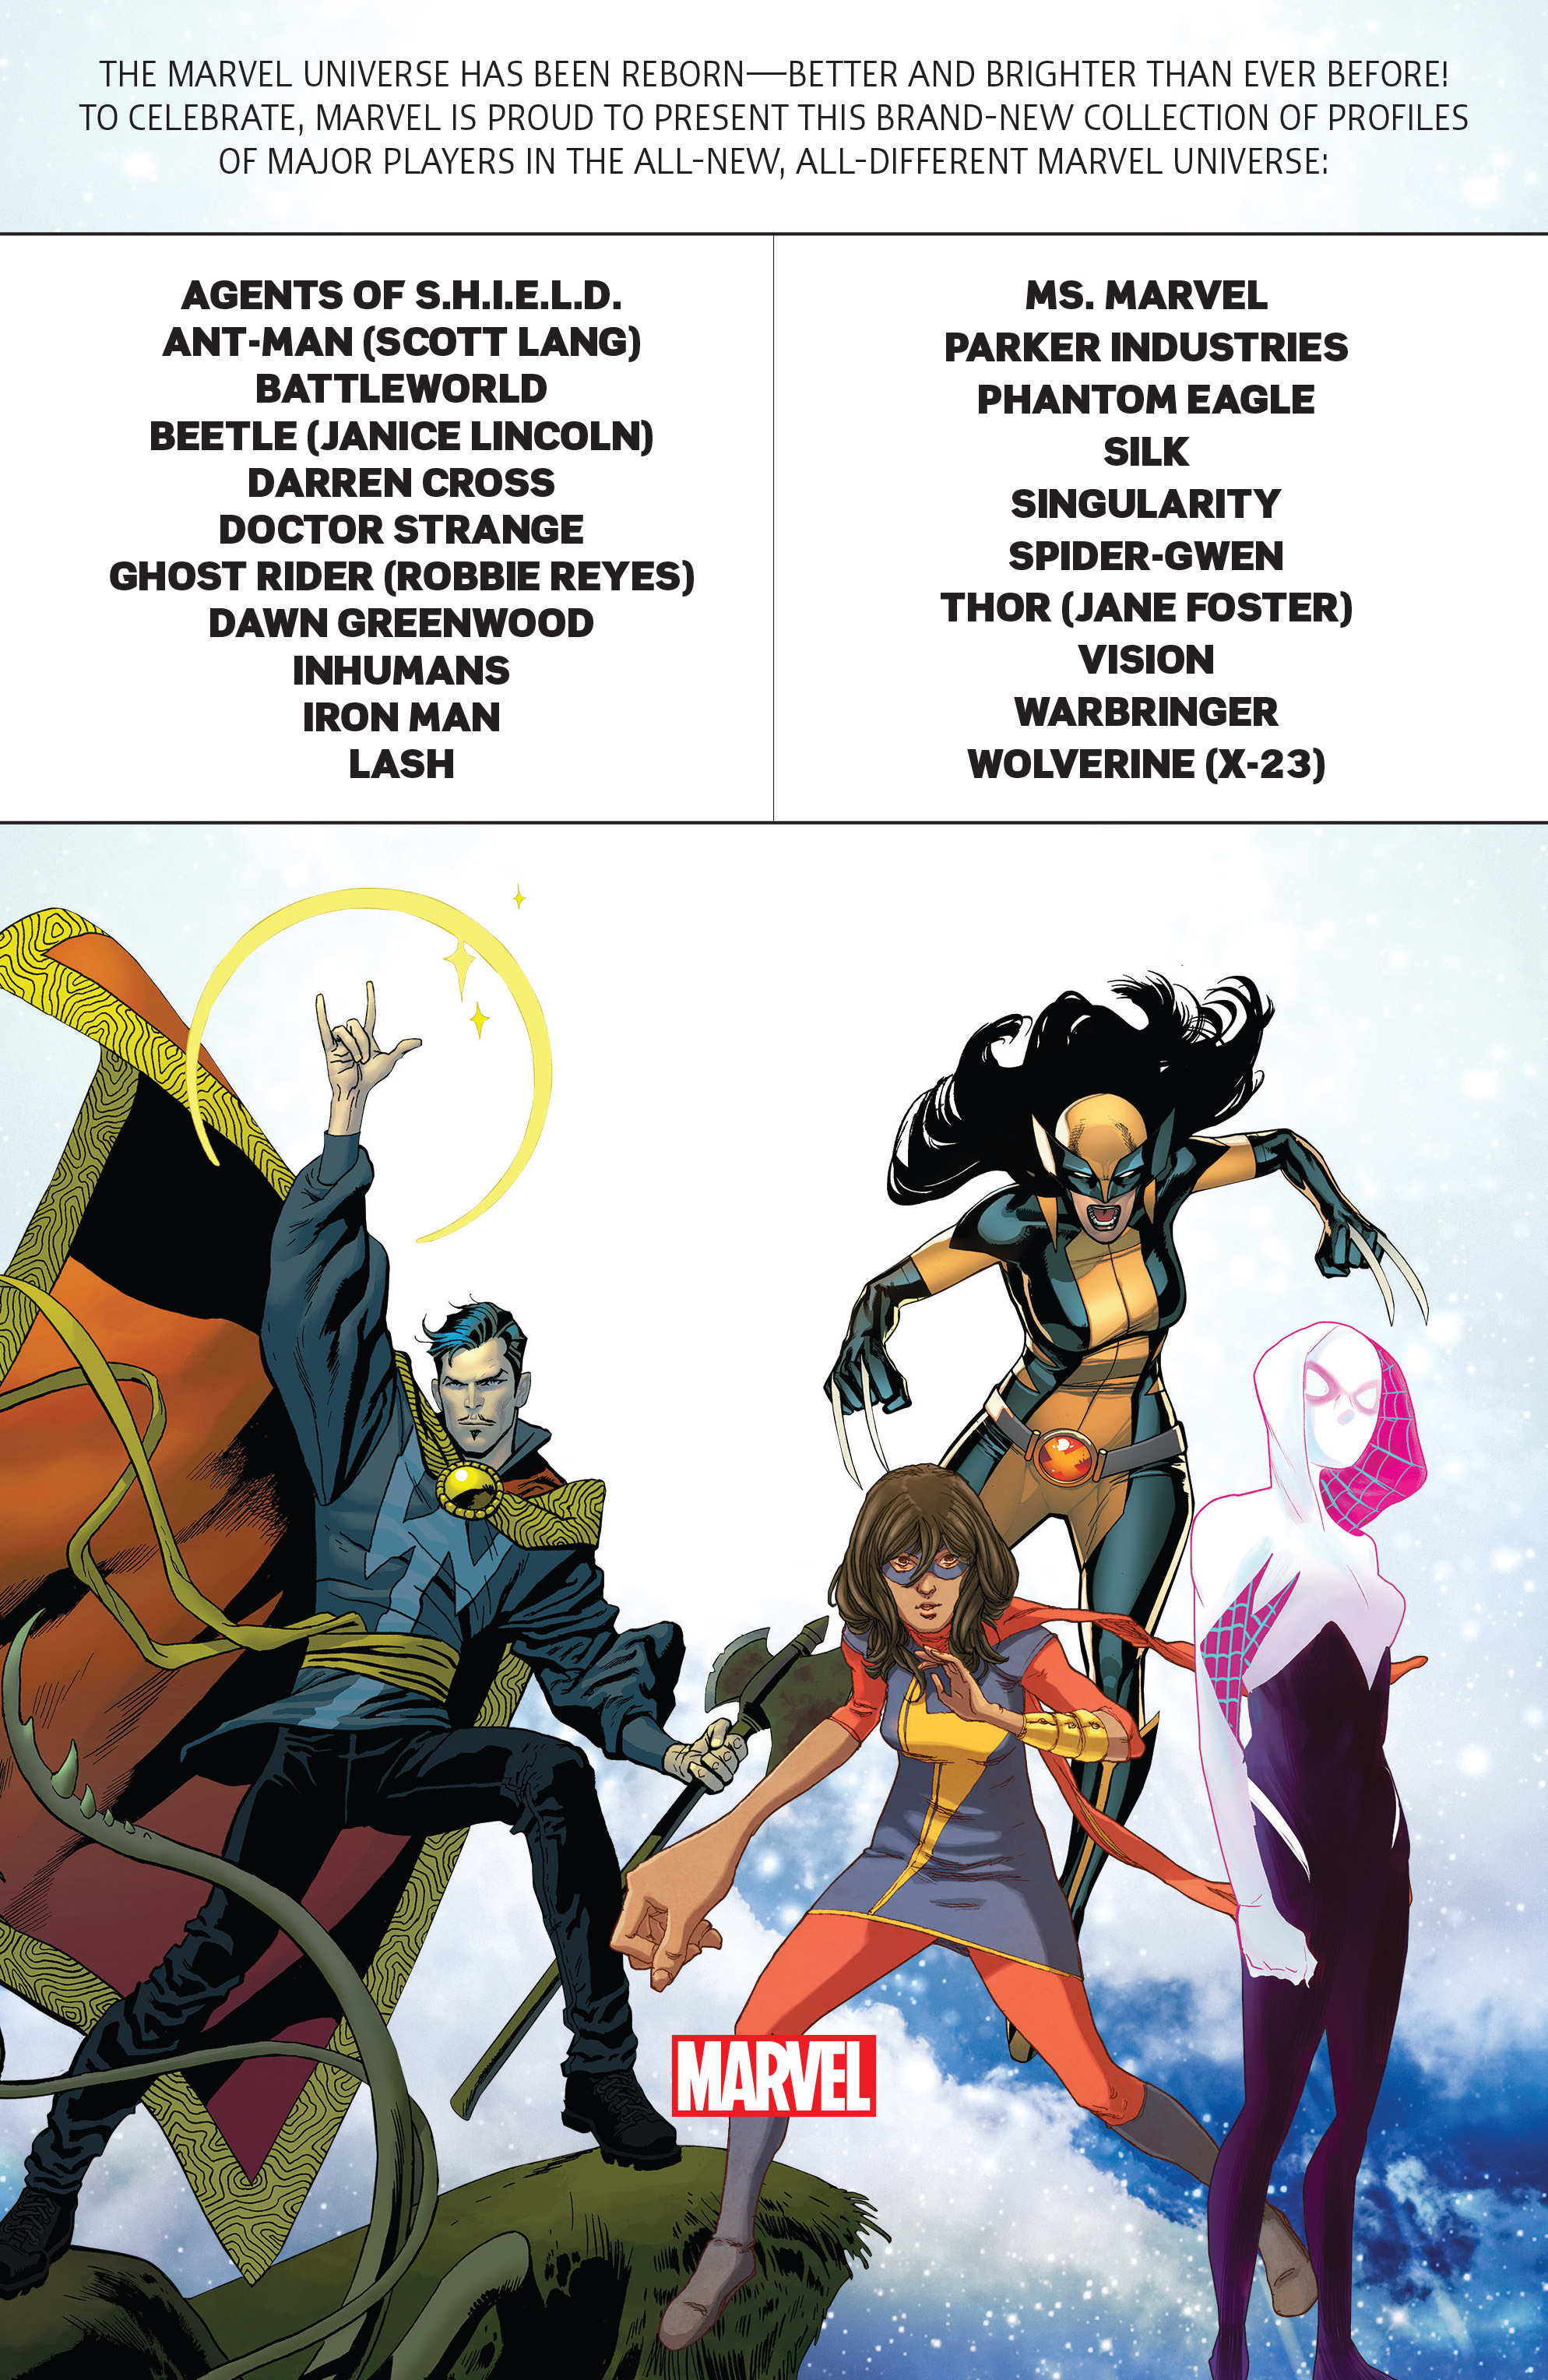 Read online All-New, All Different Marvel Universe comic -  Issue # Full - 34